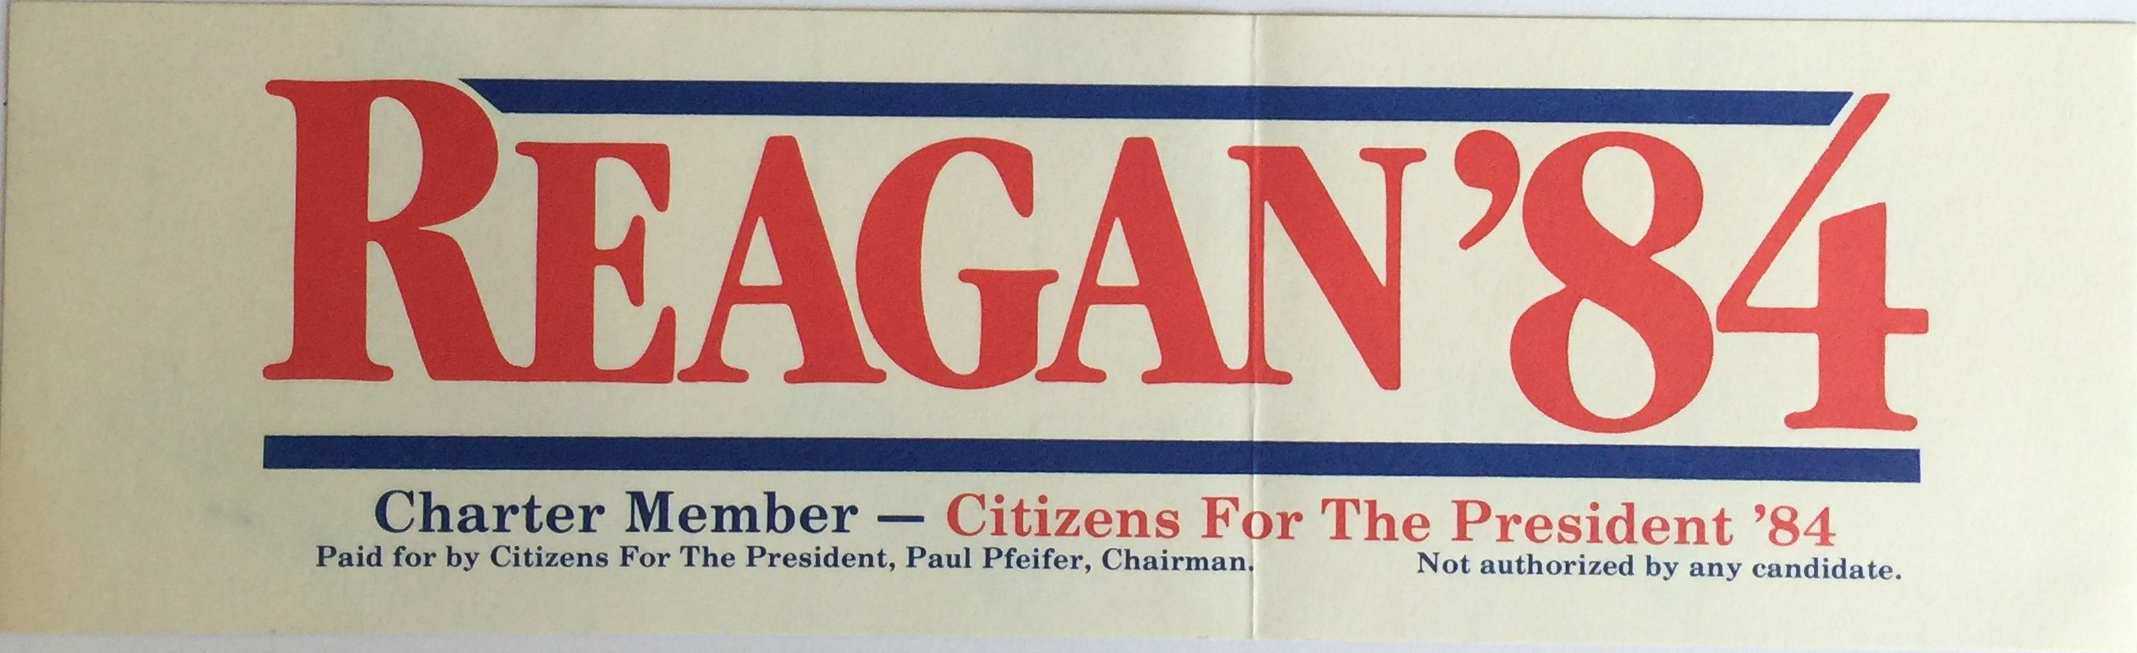 STICKER-pres1984 REAGAN.jpg